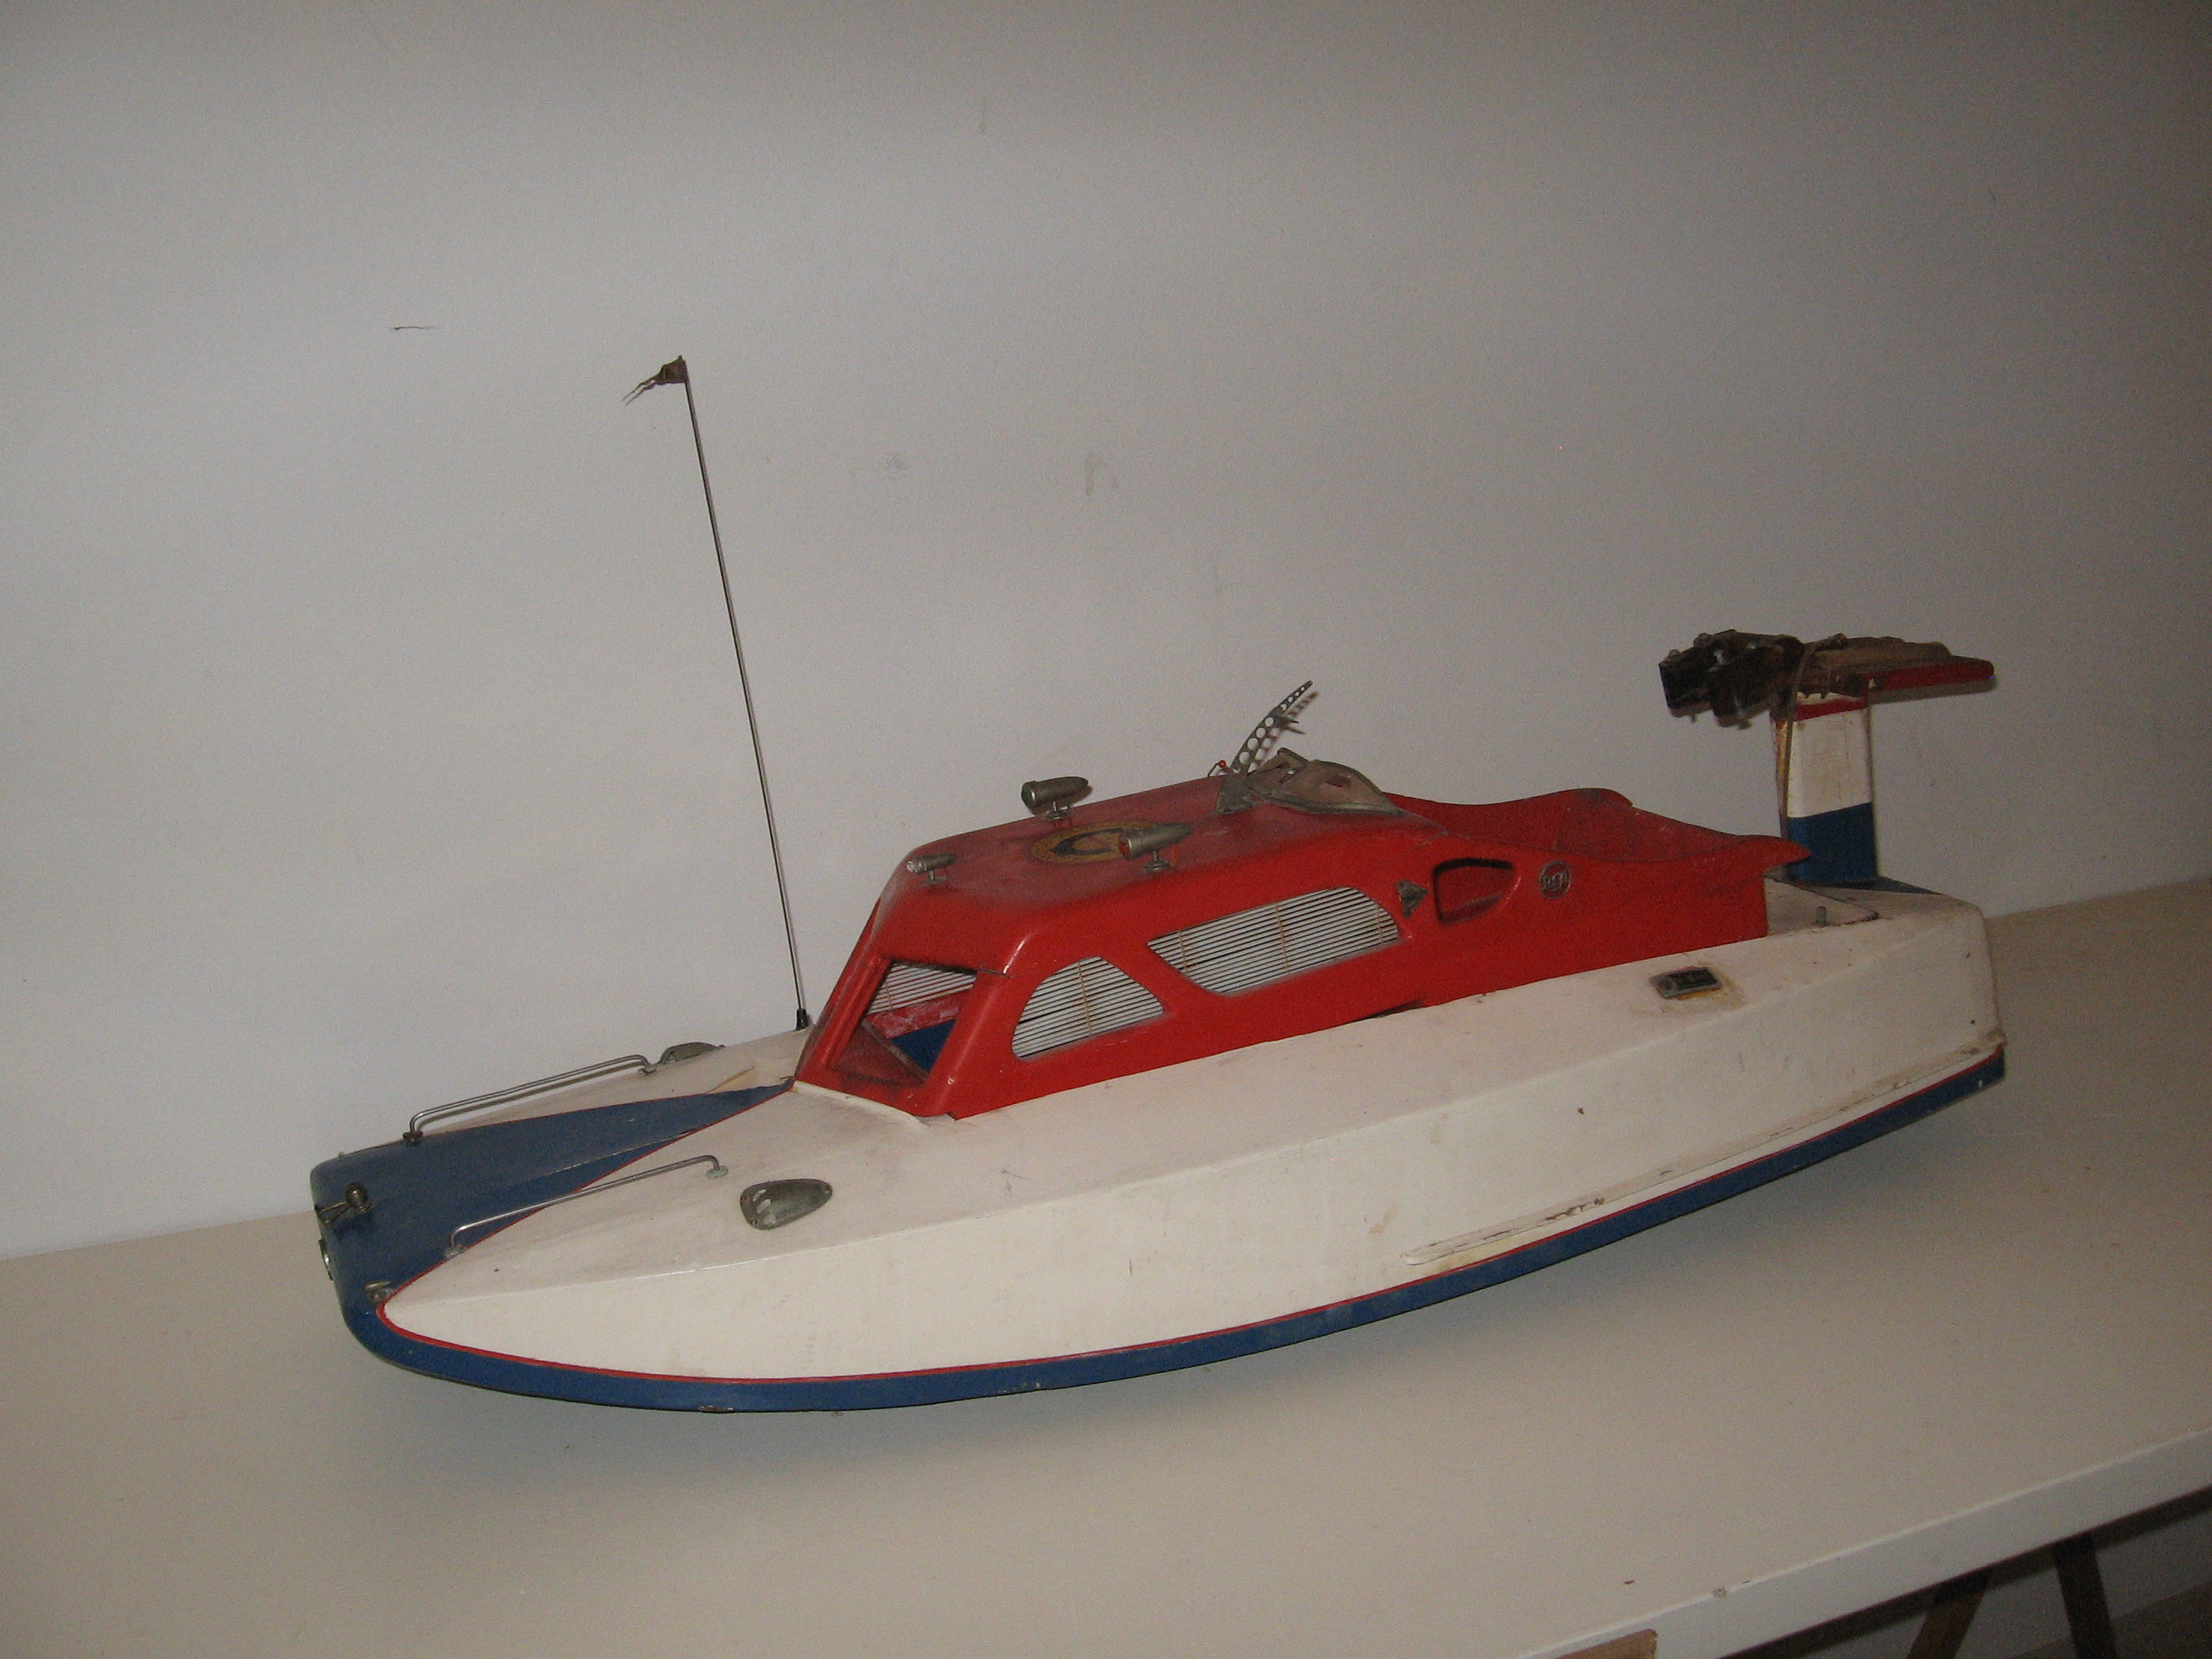 Click image for larger version  Name:RC boats 004.JPG Views:55 Size:1.16 MB ID:1977722